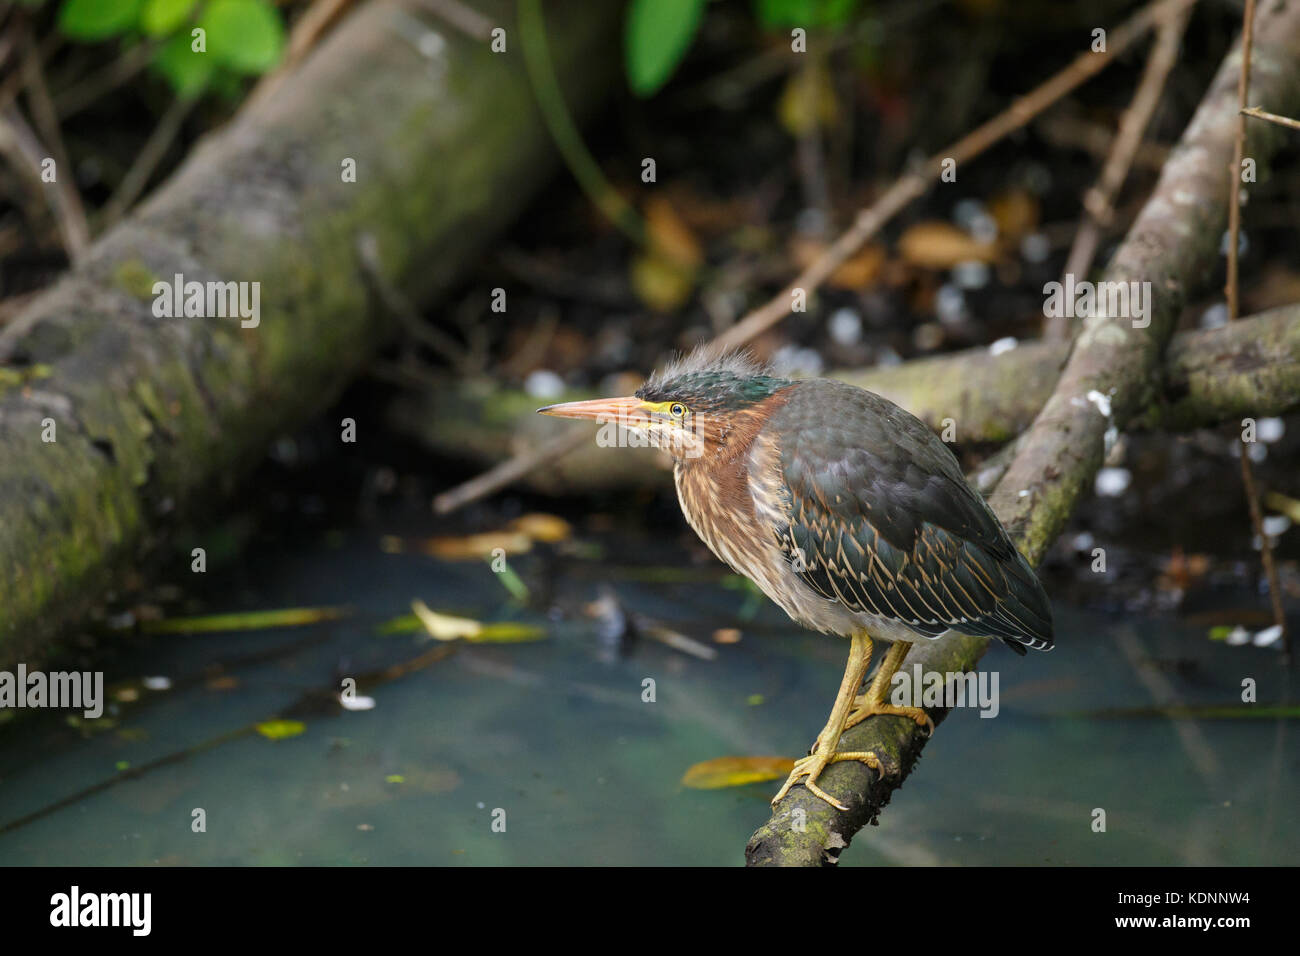 Close-up view of baby Green Heron resting on a log in a swamp setting with murky water below. - Stock Image